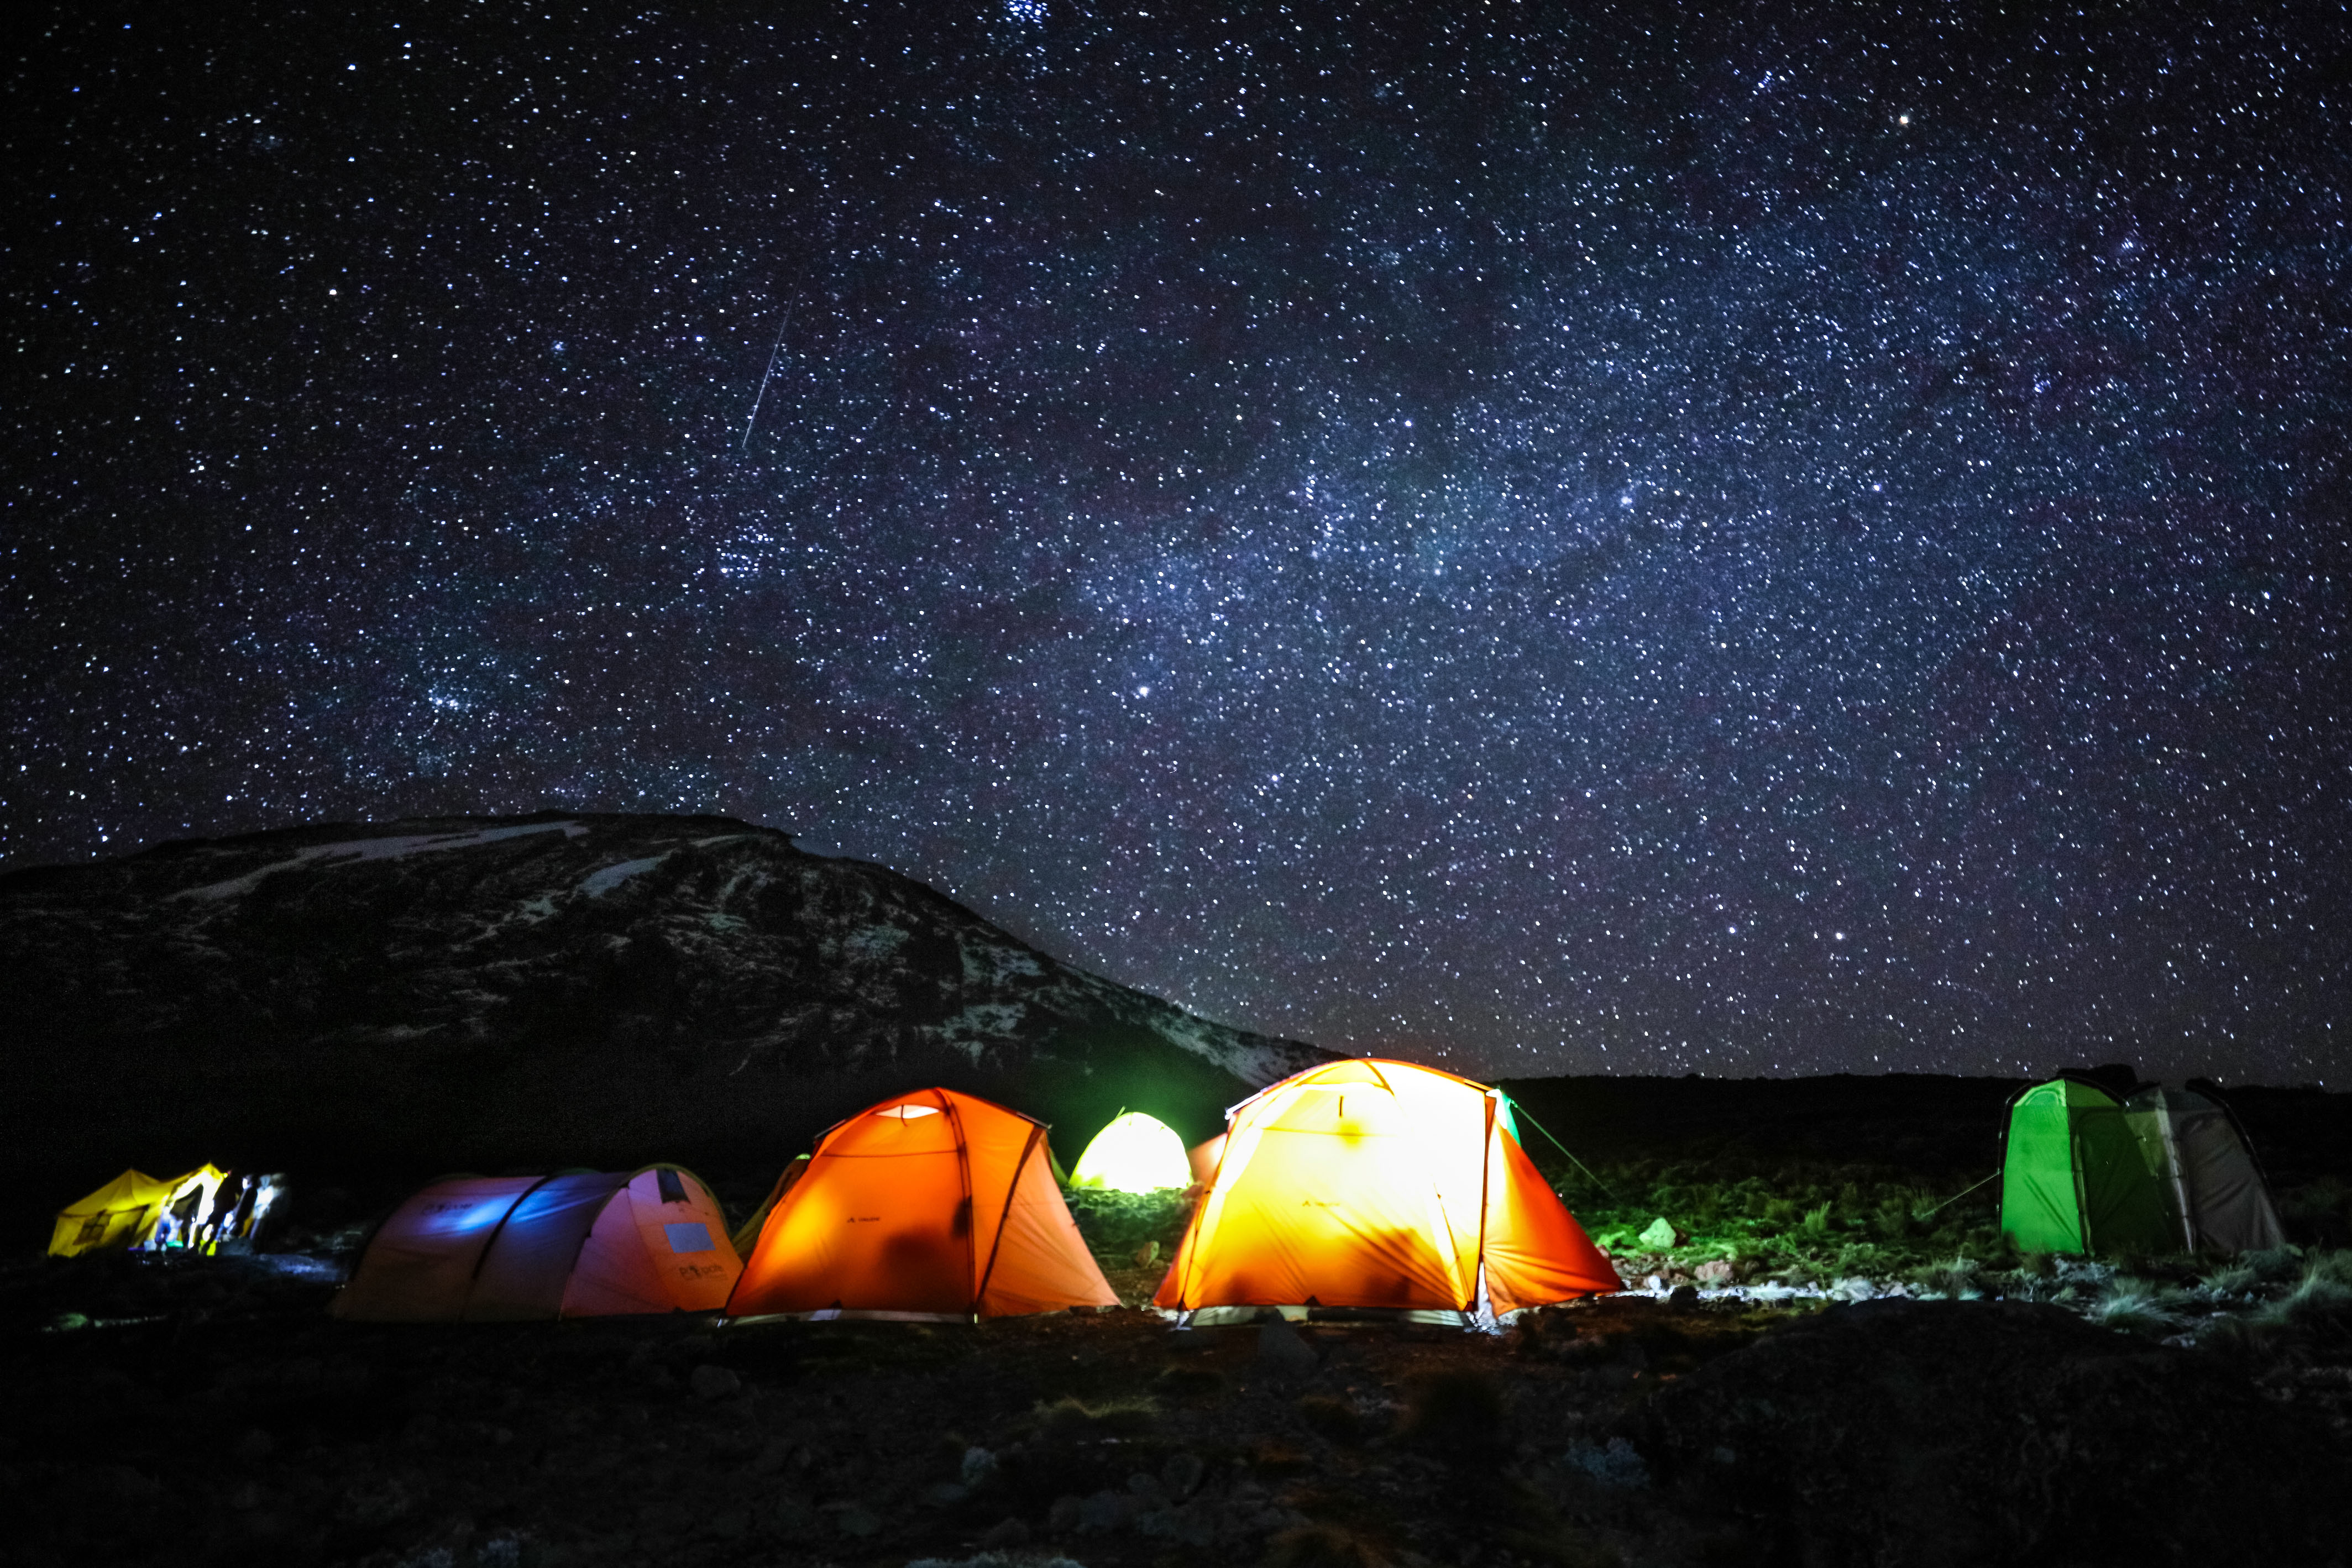 Road Scenery Hd Wallpapers Sleeping Under The Stars Photographer Captures Beautiful